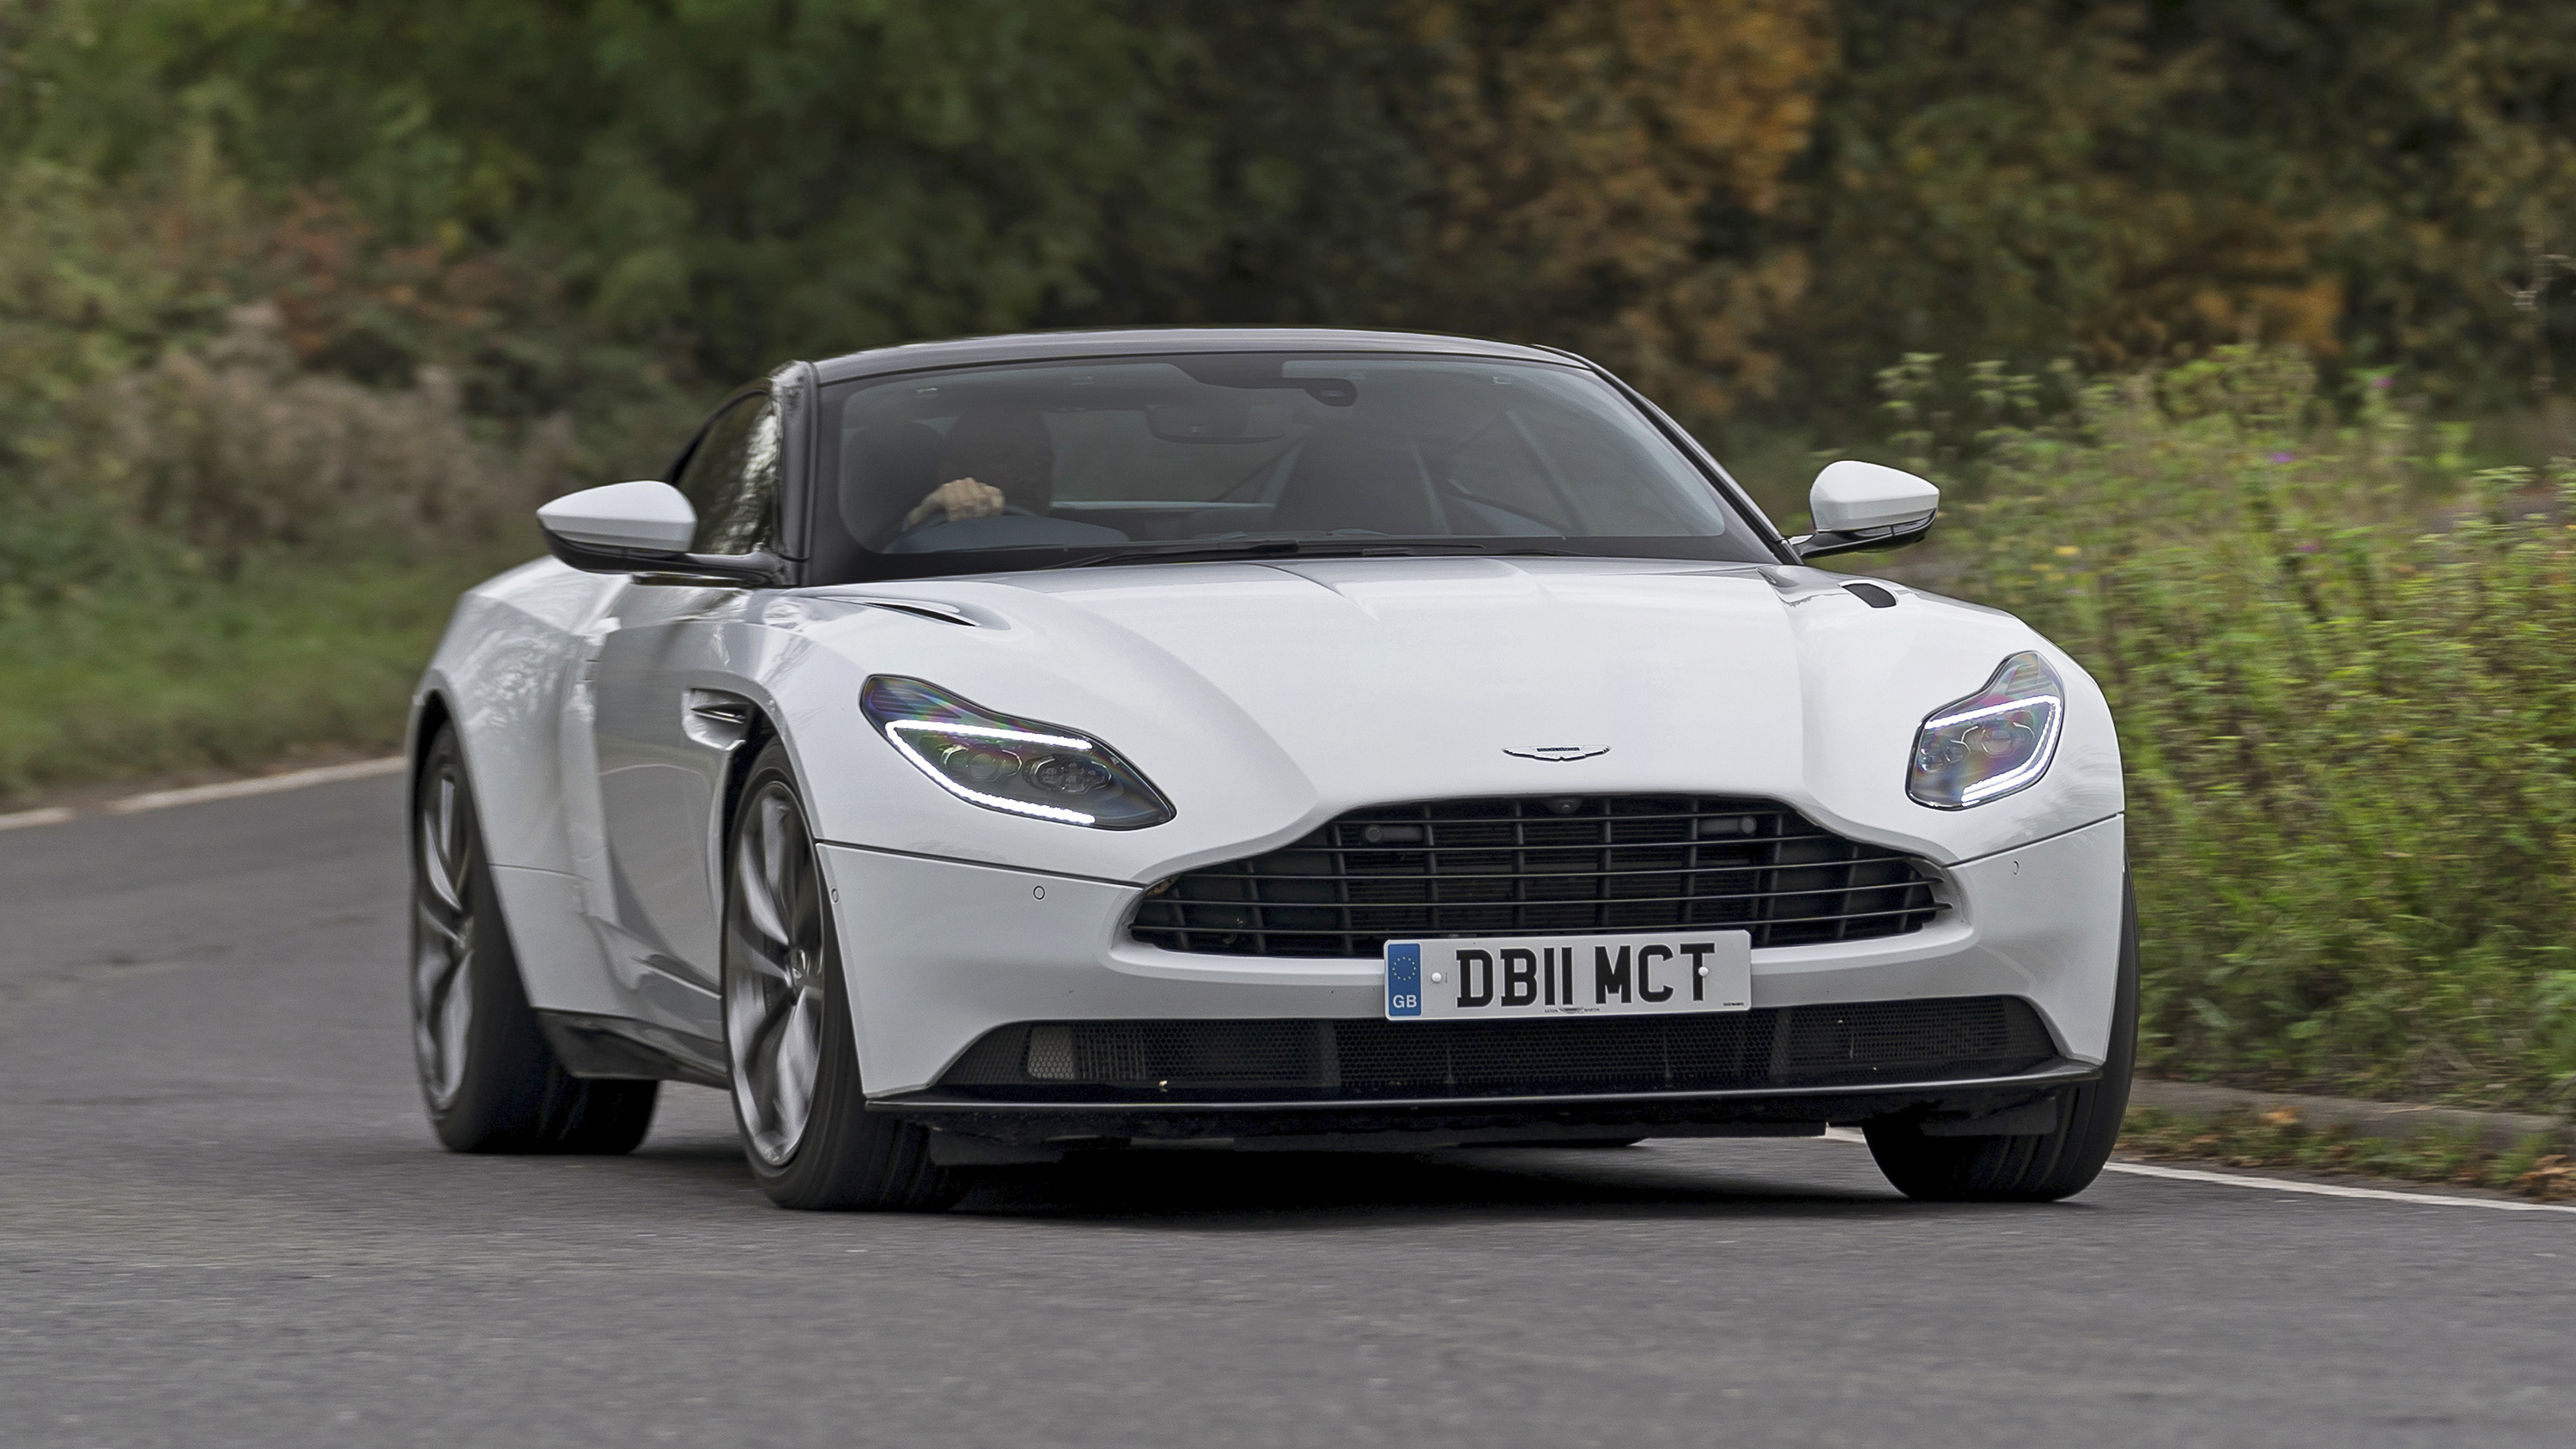 Aston Martin Db11 V8 Review Amg Powered Gt On Uk Roads Top Gear